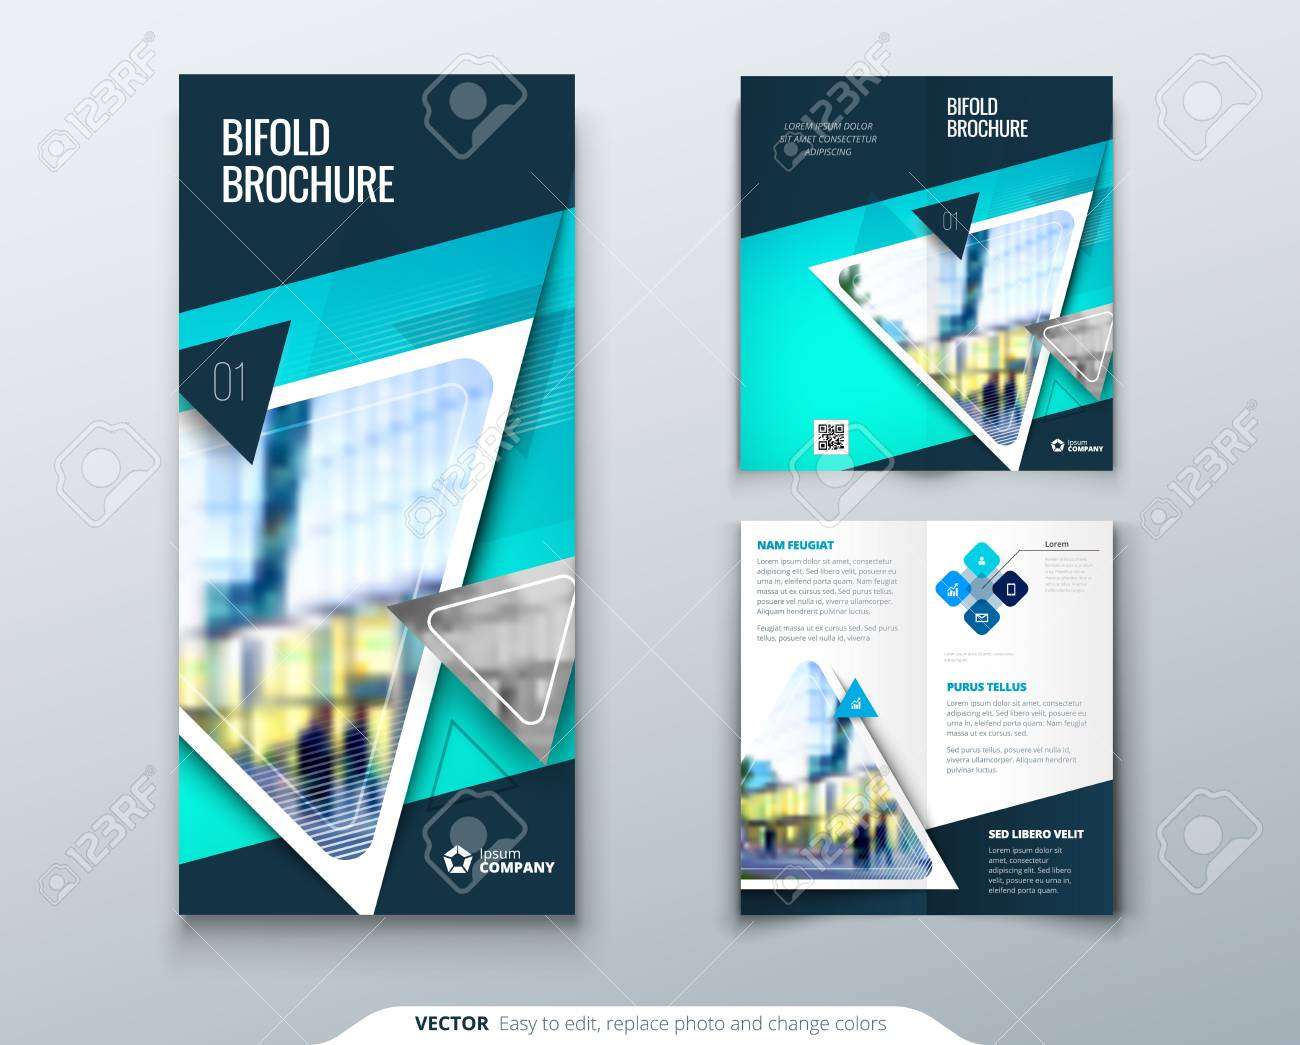 bi fold brochure design teal template for bi fold flyer layout